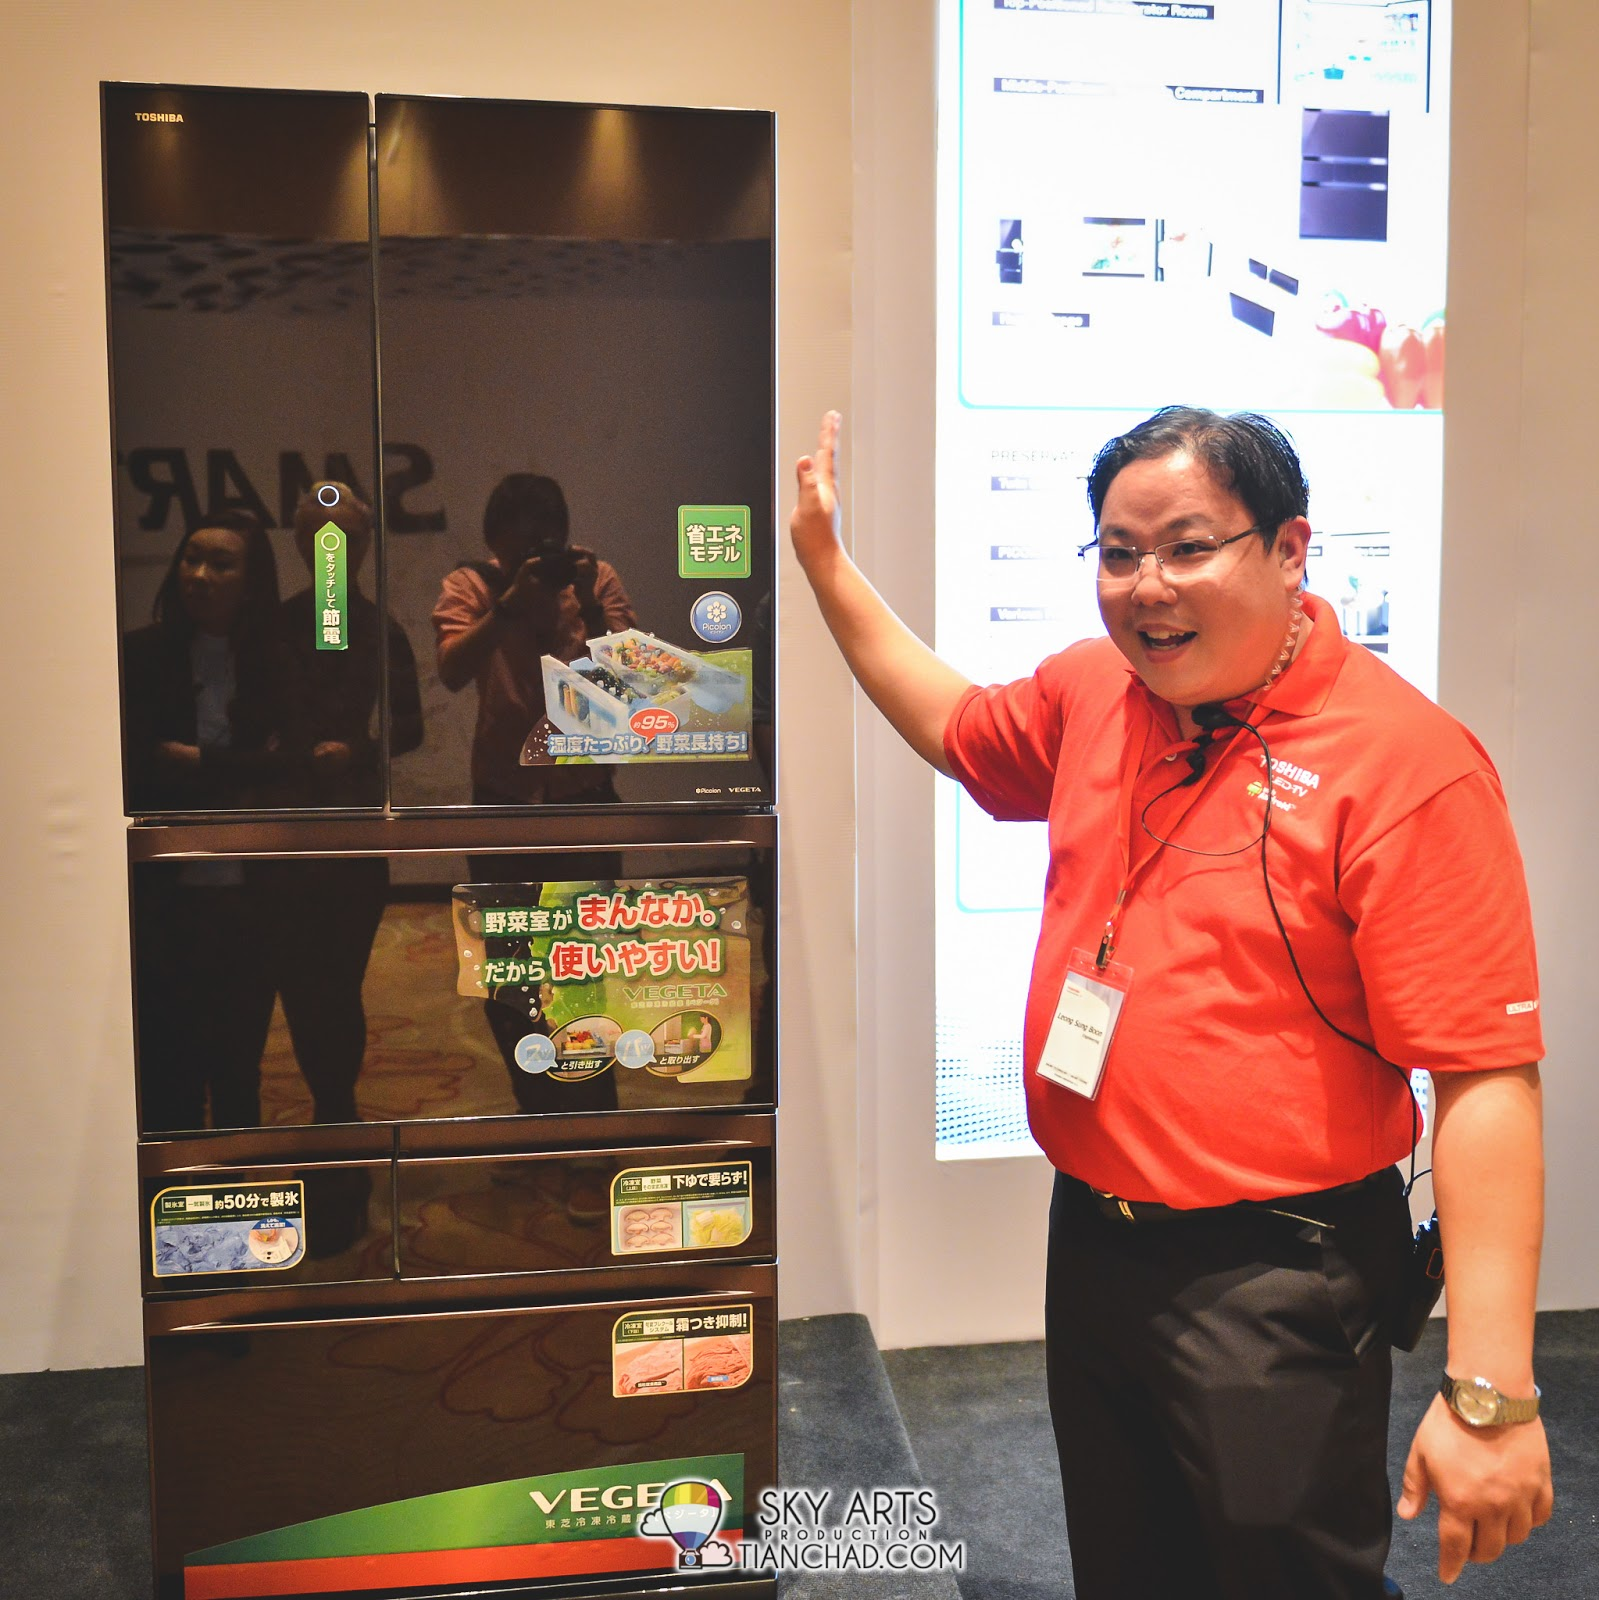 Toshiba's new INVERTER Multi-door Refrigerator G-Series (GR-G62FM, Net IEC 465L)